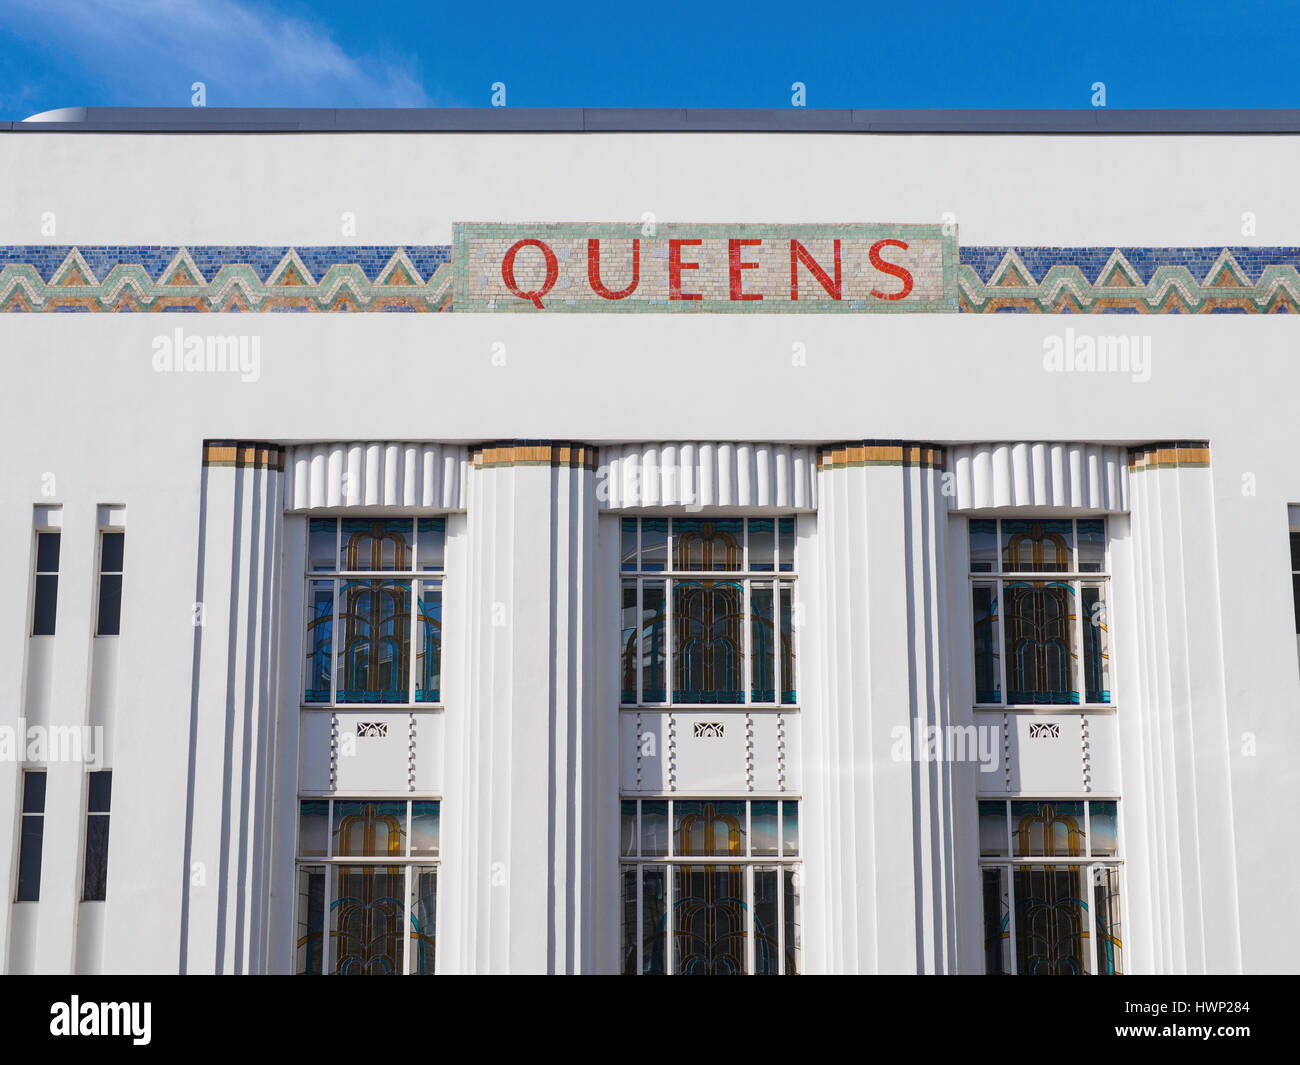 Original Art Deco Facade Of The Old Queens Cinema